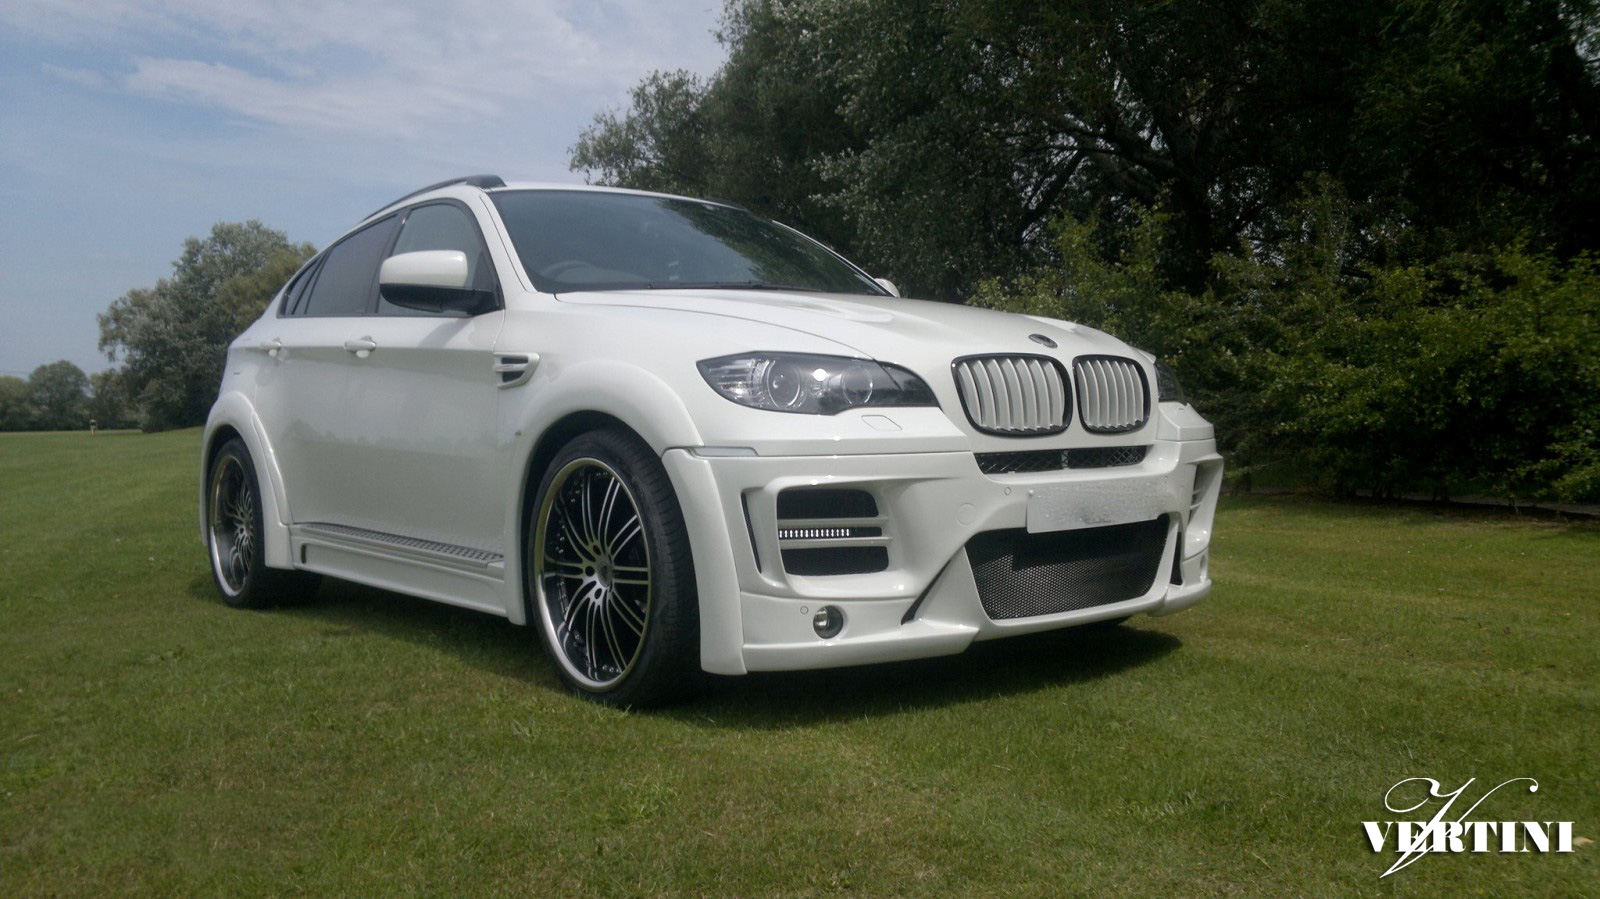 Vertini Hennessey ''22 on BMW X6